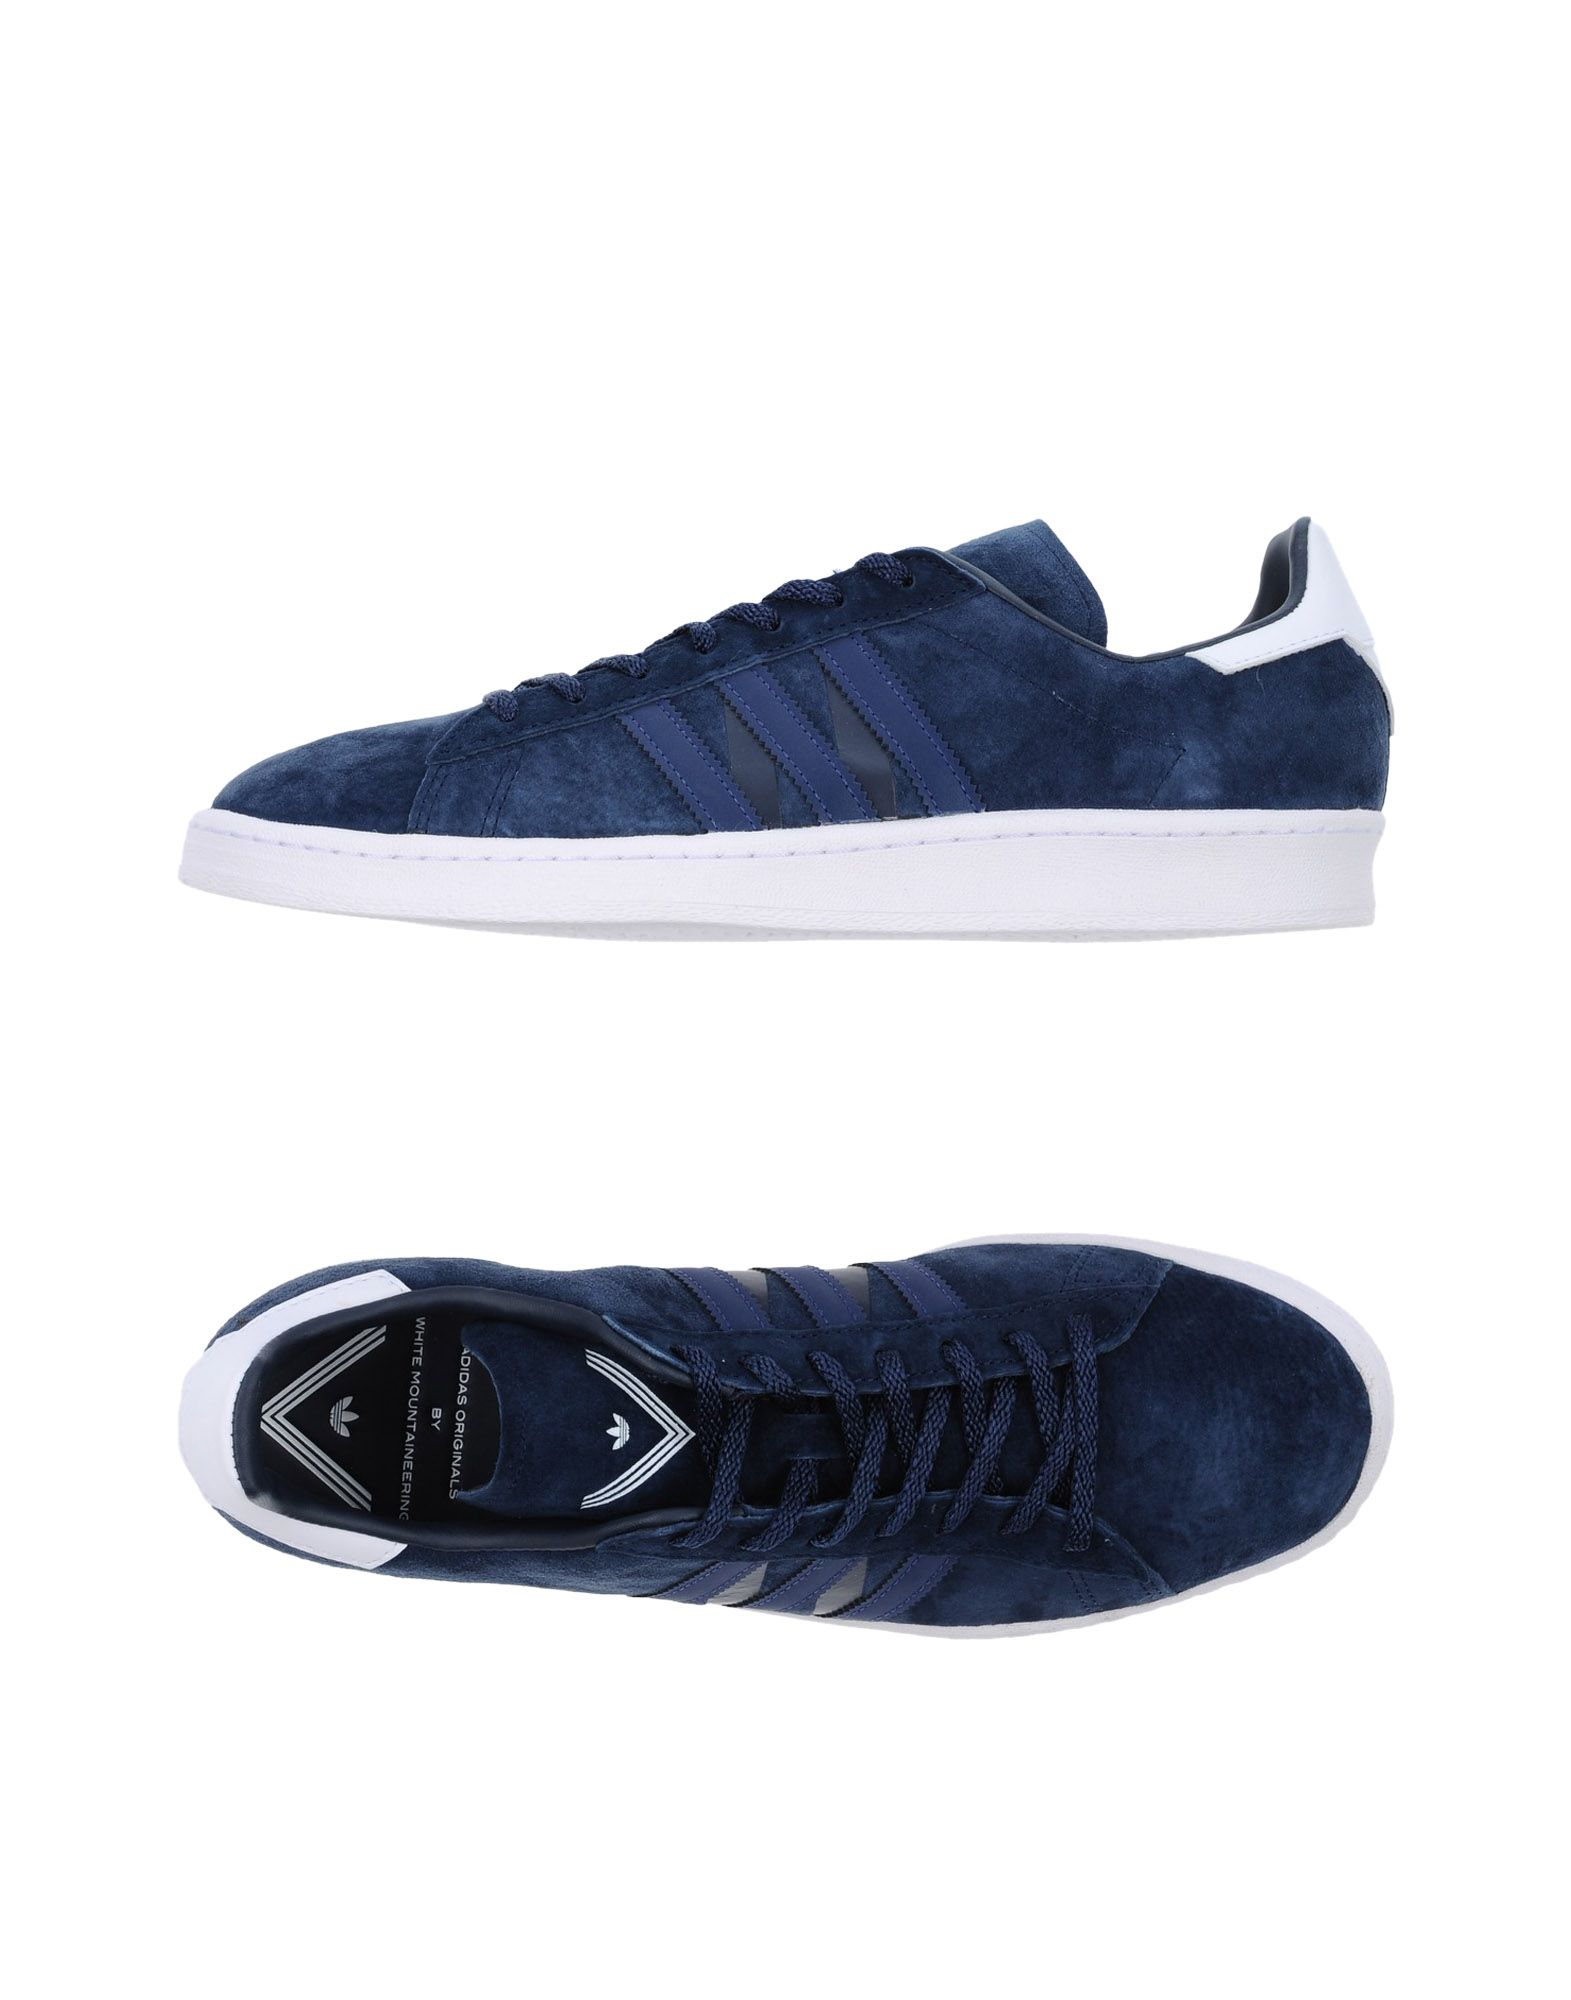 Sneakers Adidas Originals By White Mountaineering Homme - Sneakers Adidas Originals By White Mountaineering sur